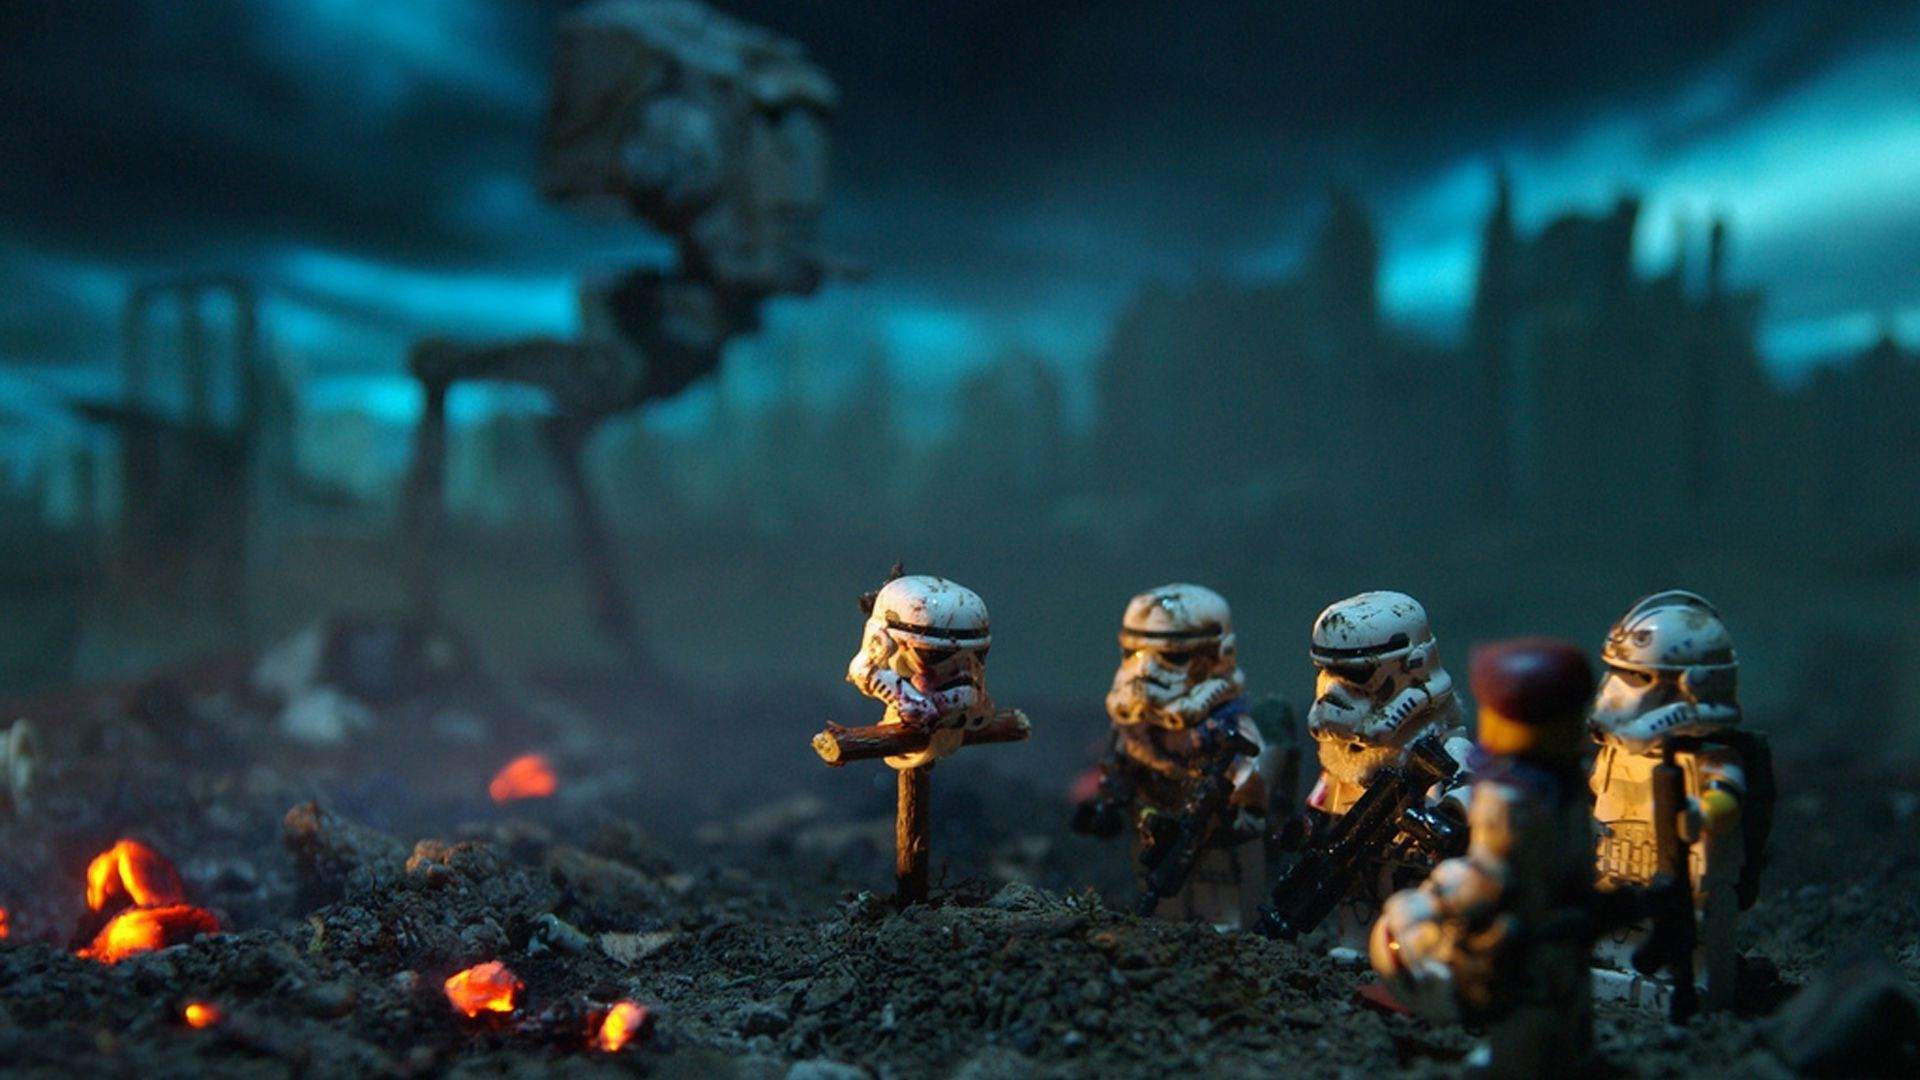 Undefined Lego Star Wars Wallpapers 42 Wallpapers Adorable Wallpapers Star Wars Wallpaper Lego Star Wars Lego Star